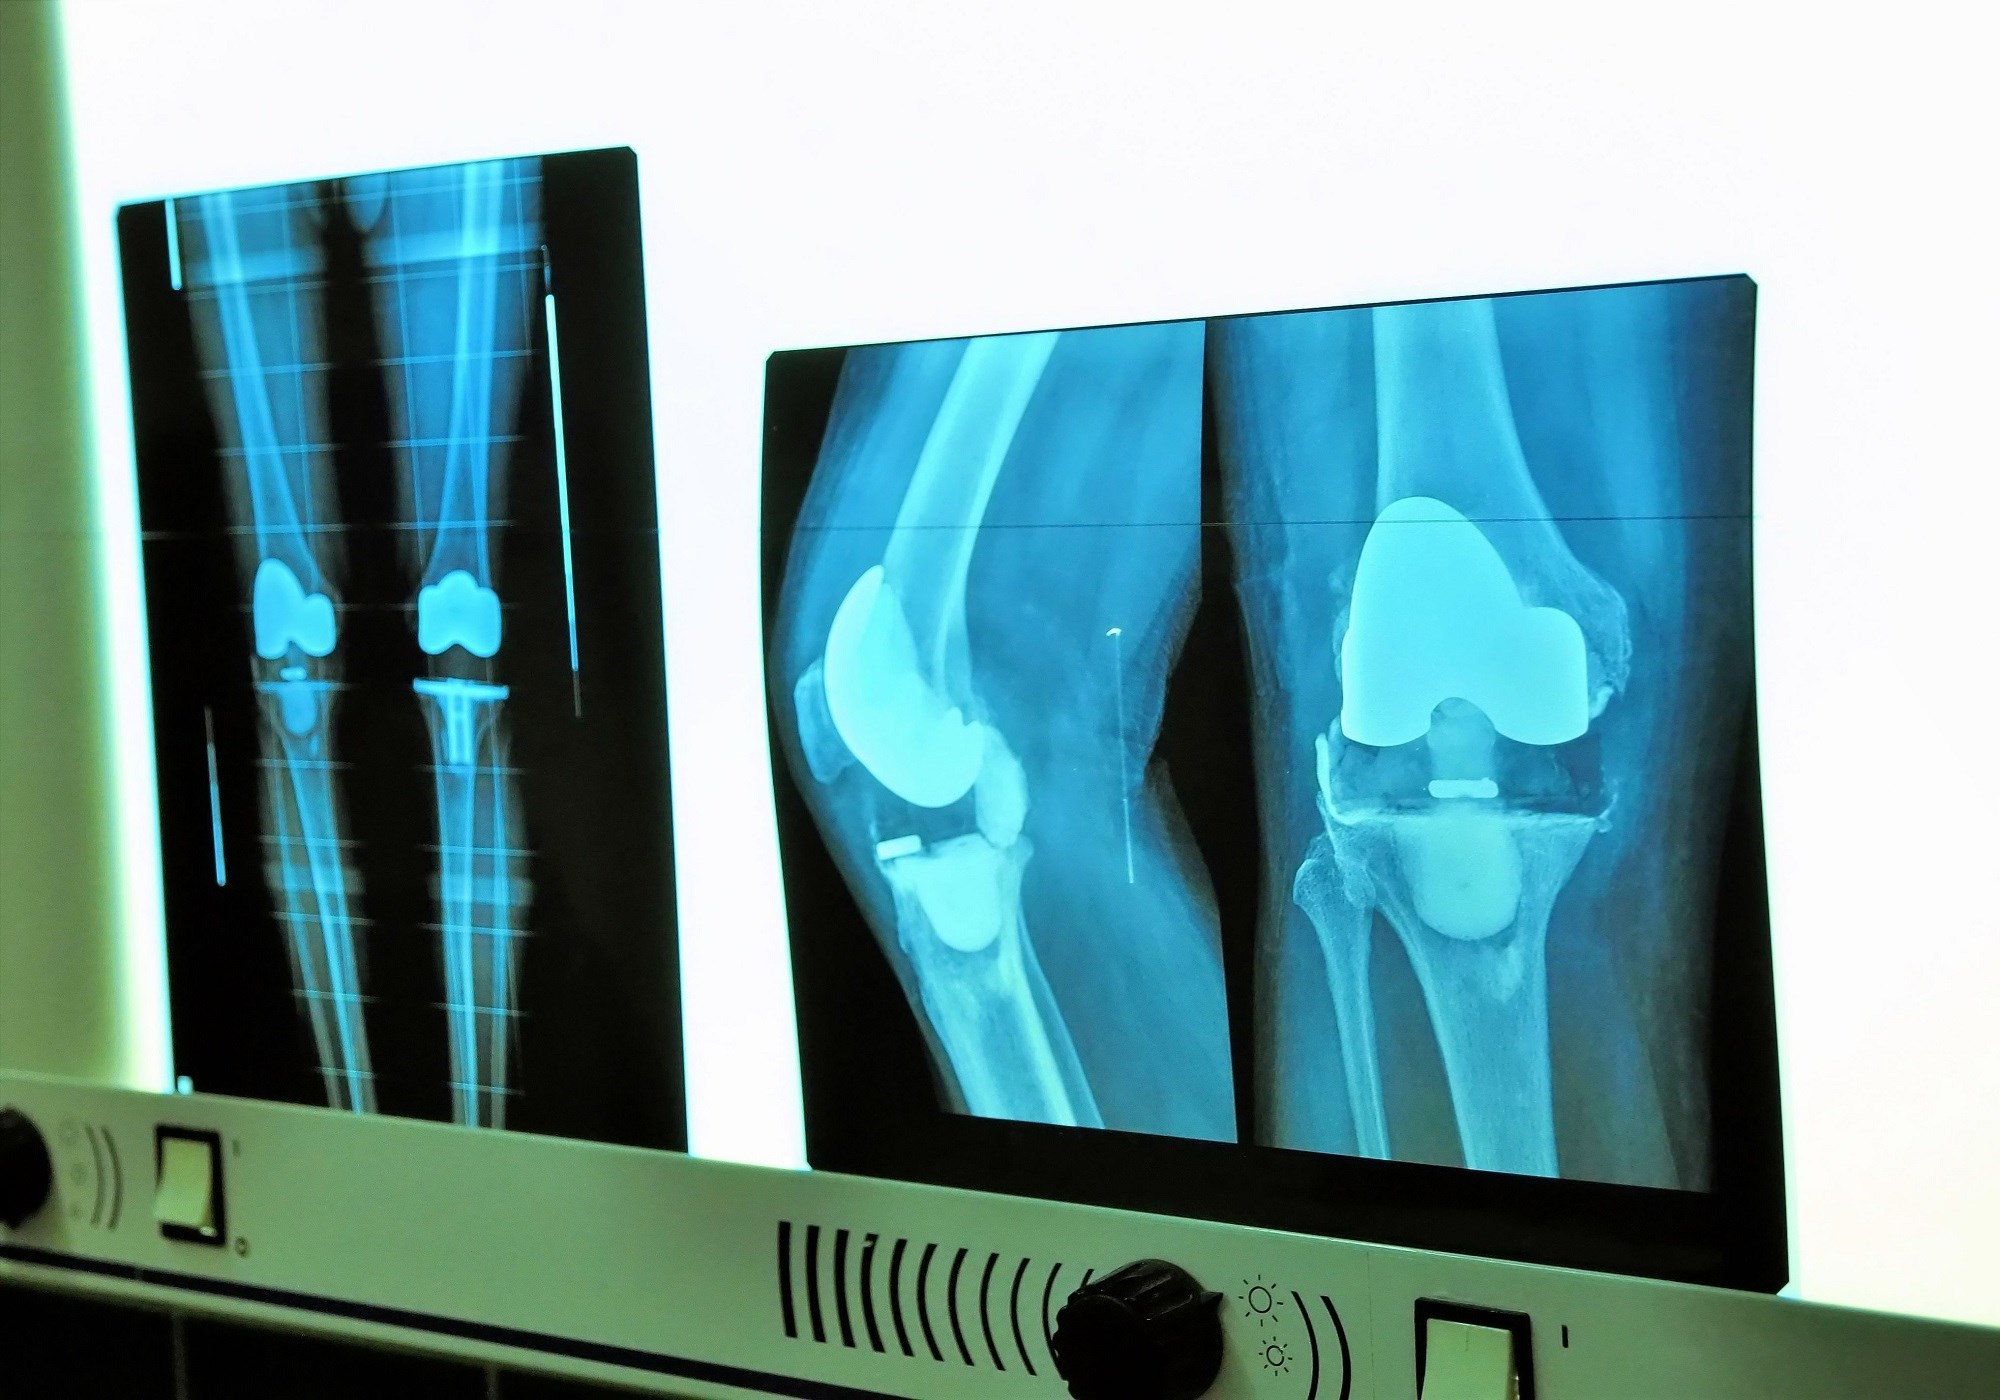 Pain Scores After Total Knee Arthroplasty May Predict Chronic Opioid Use